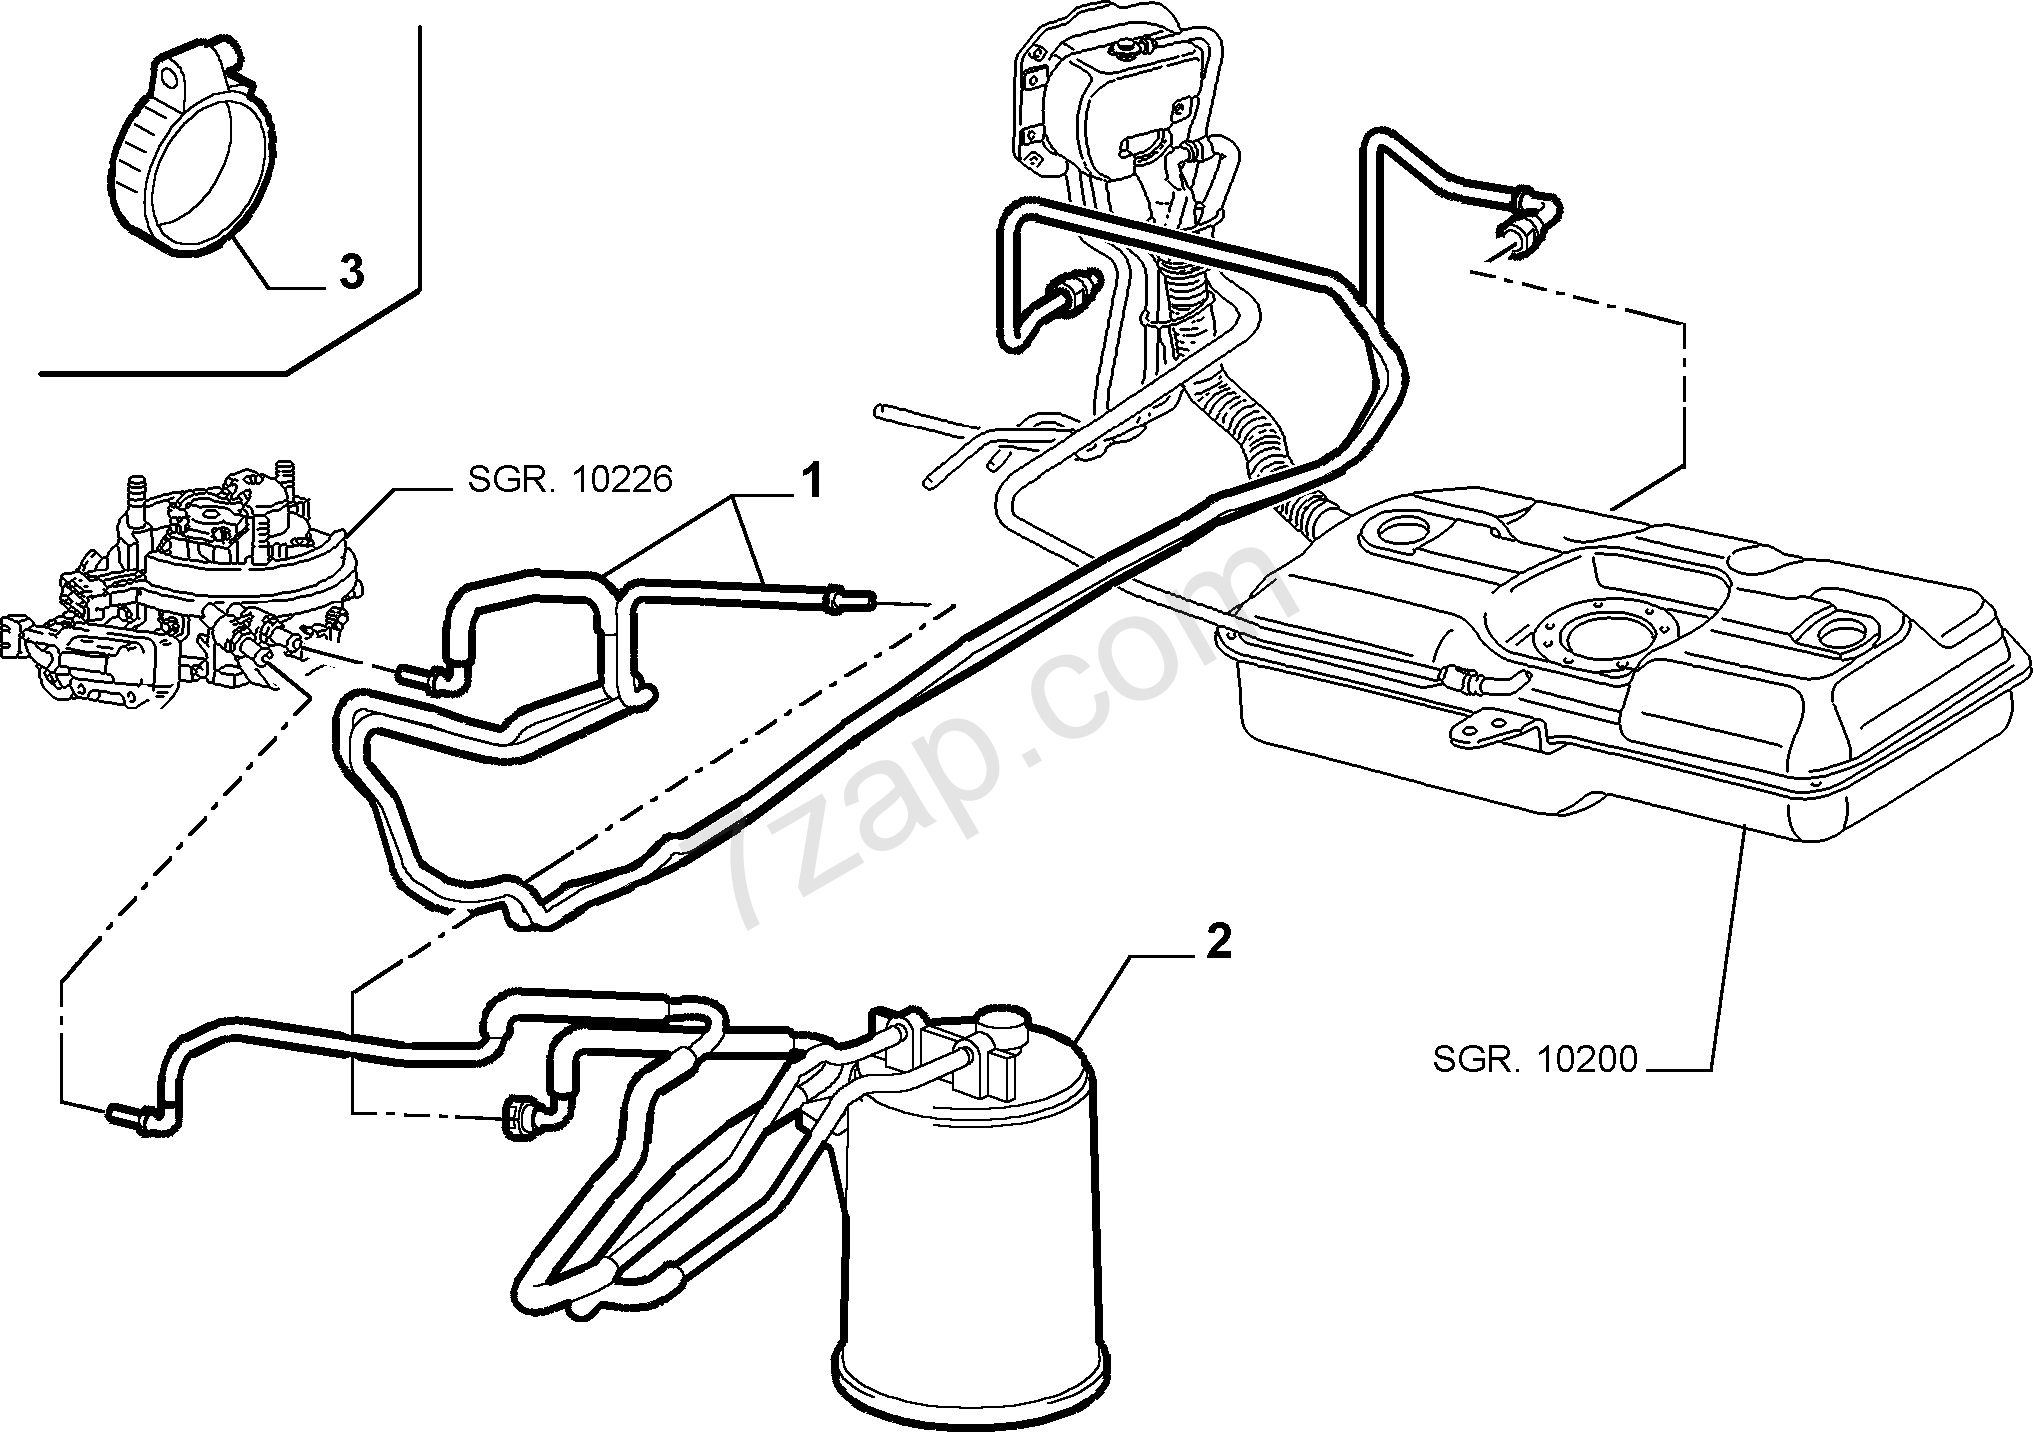 fiat fuel pump diagram wiring library  fuel tank piping fiat seicento 1998 2010